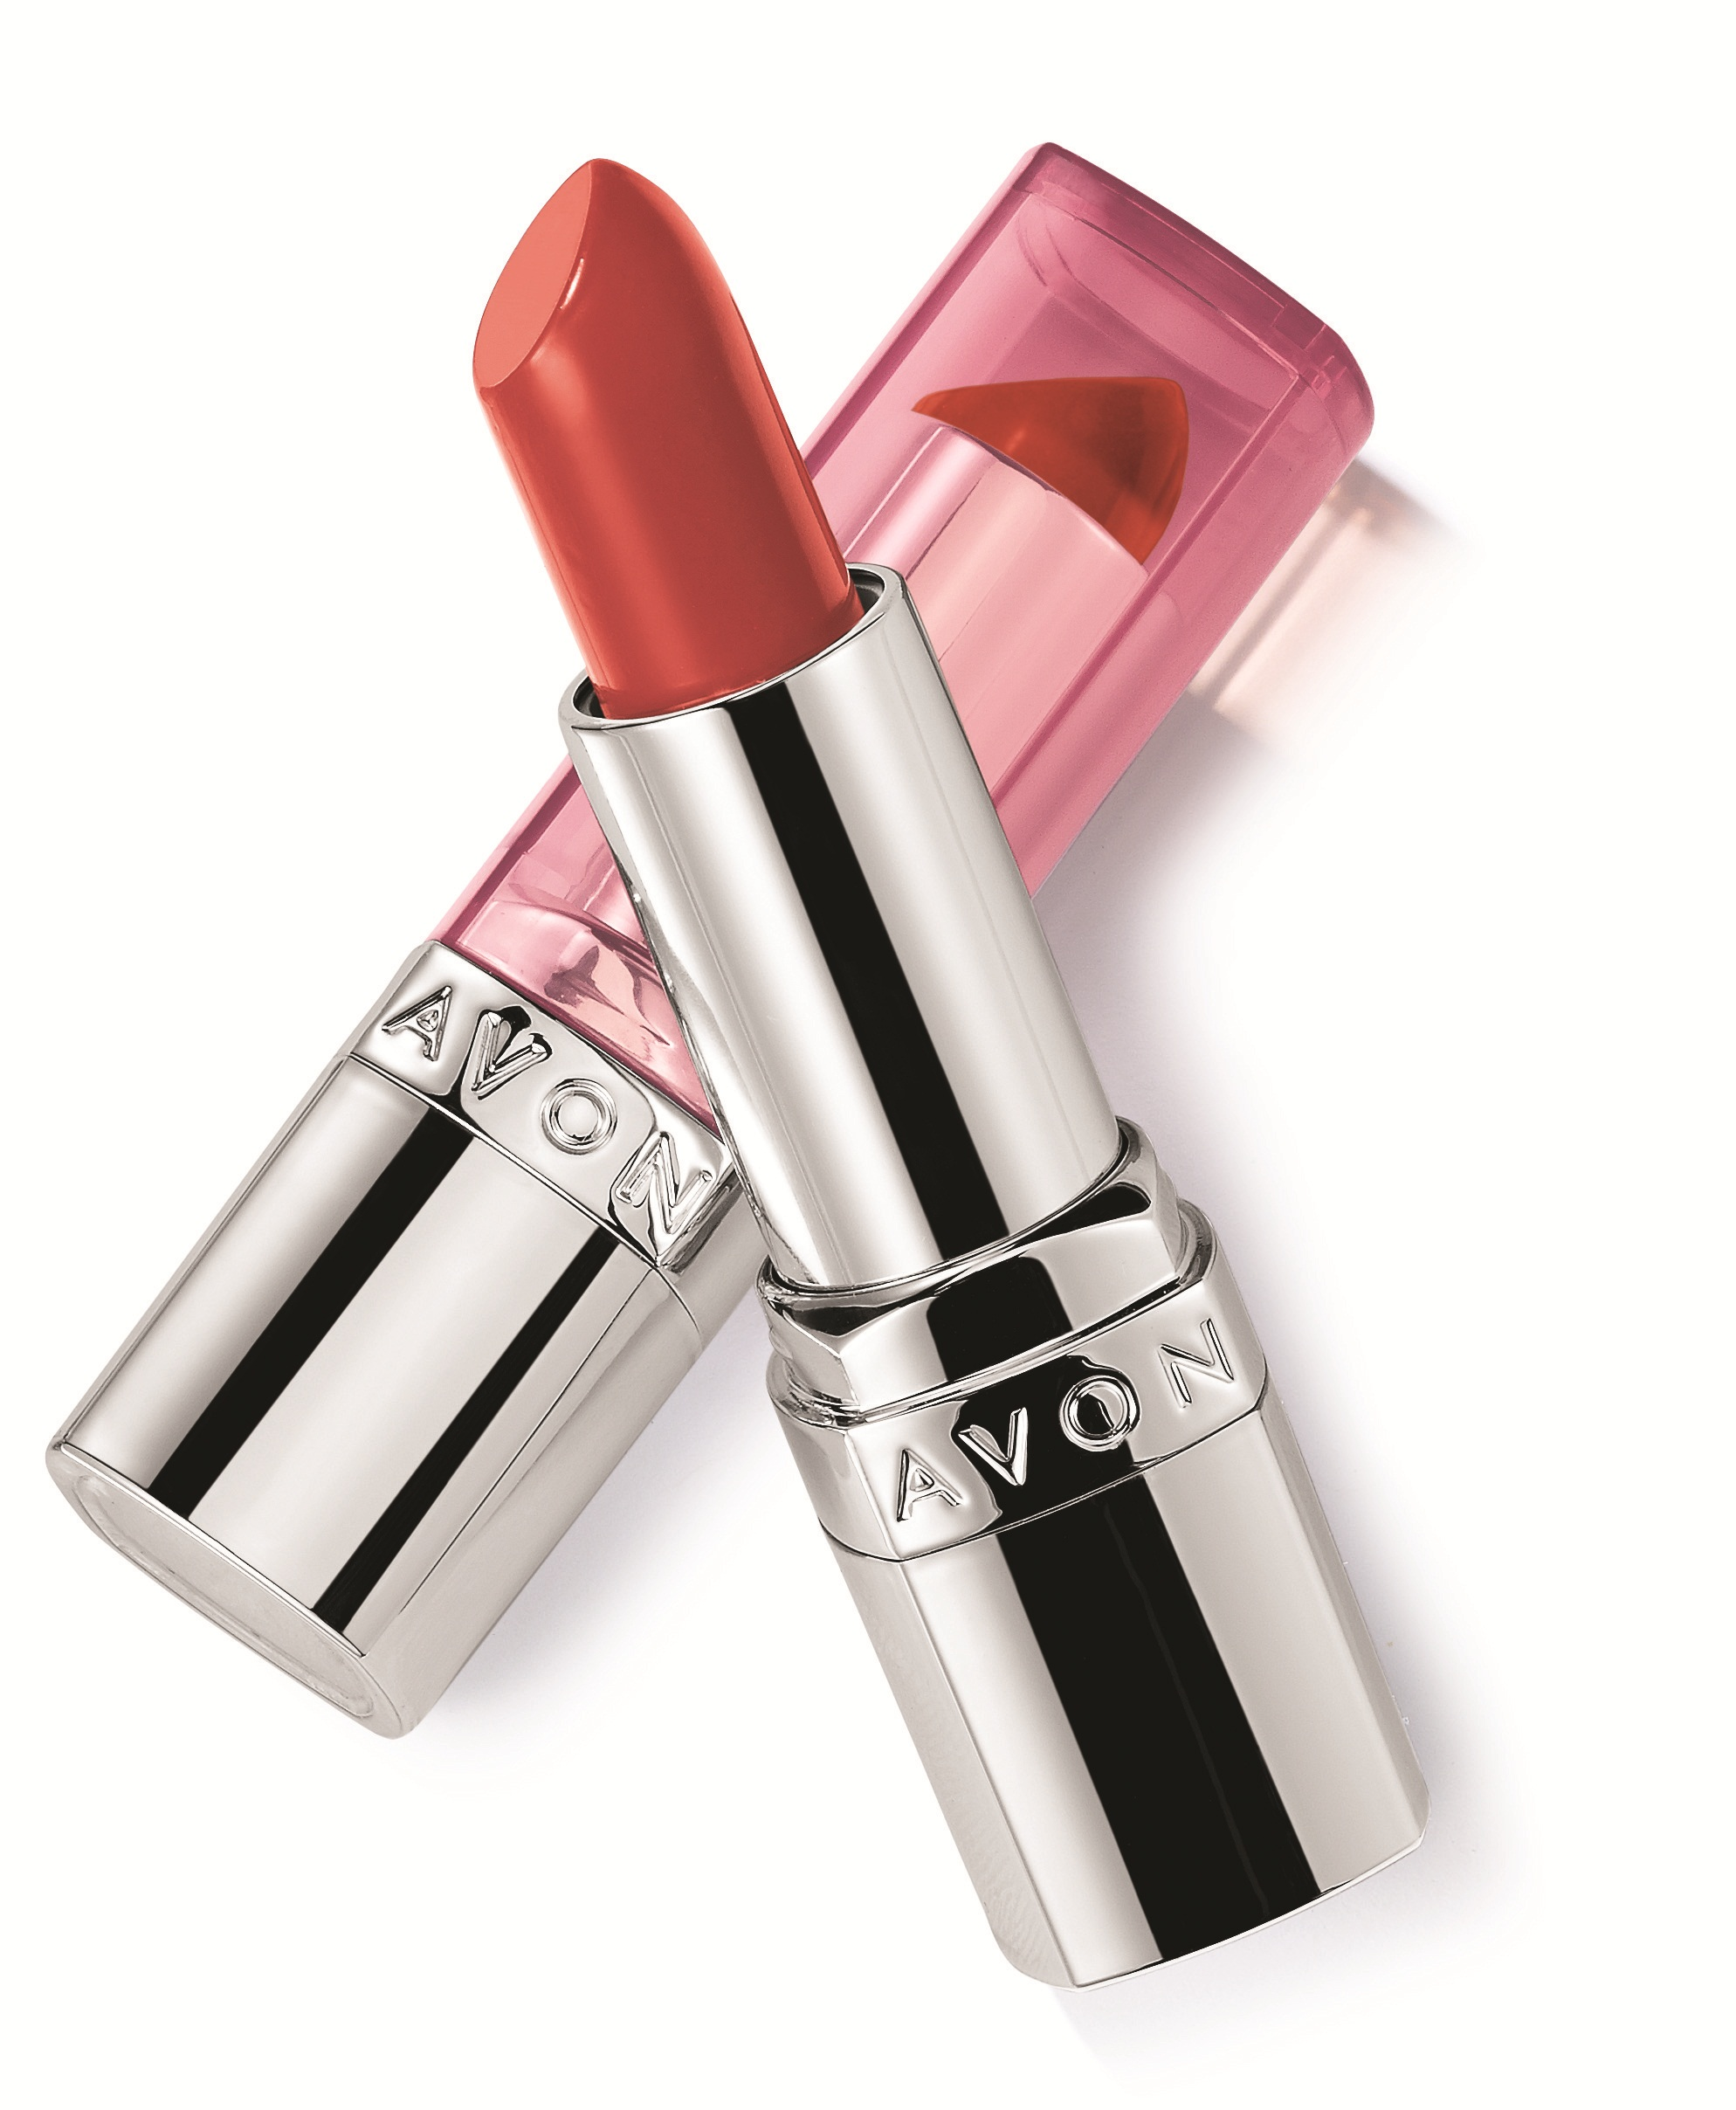 New Ultra Color Absolute Lipstick from AVON  coral be chic mag